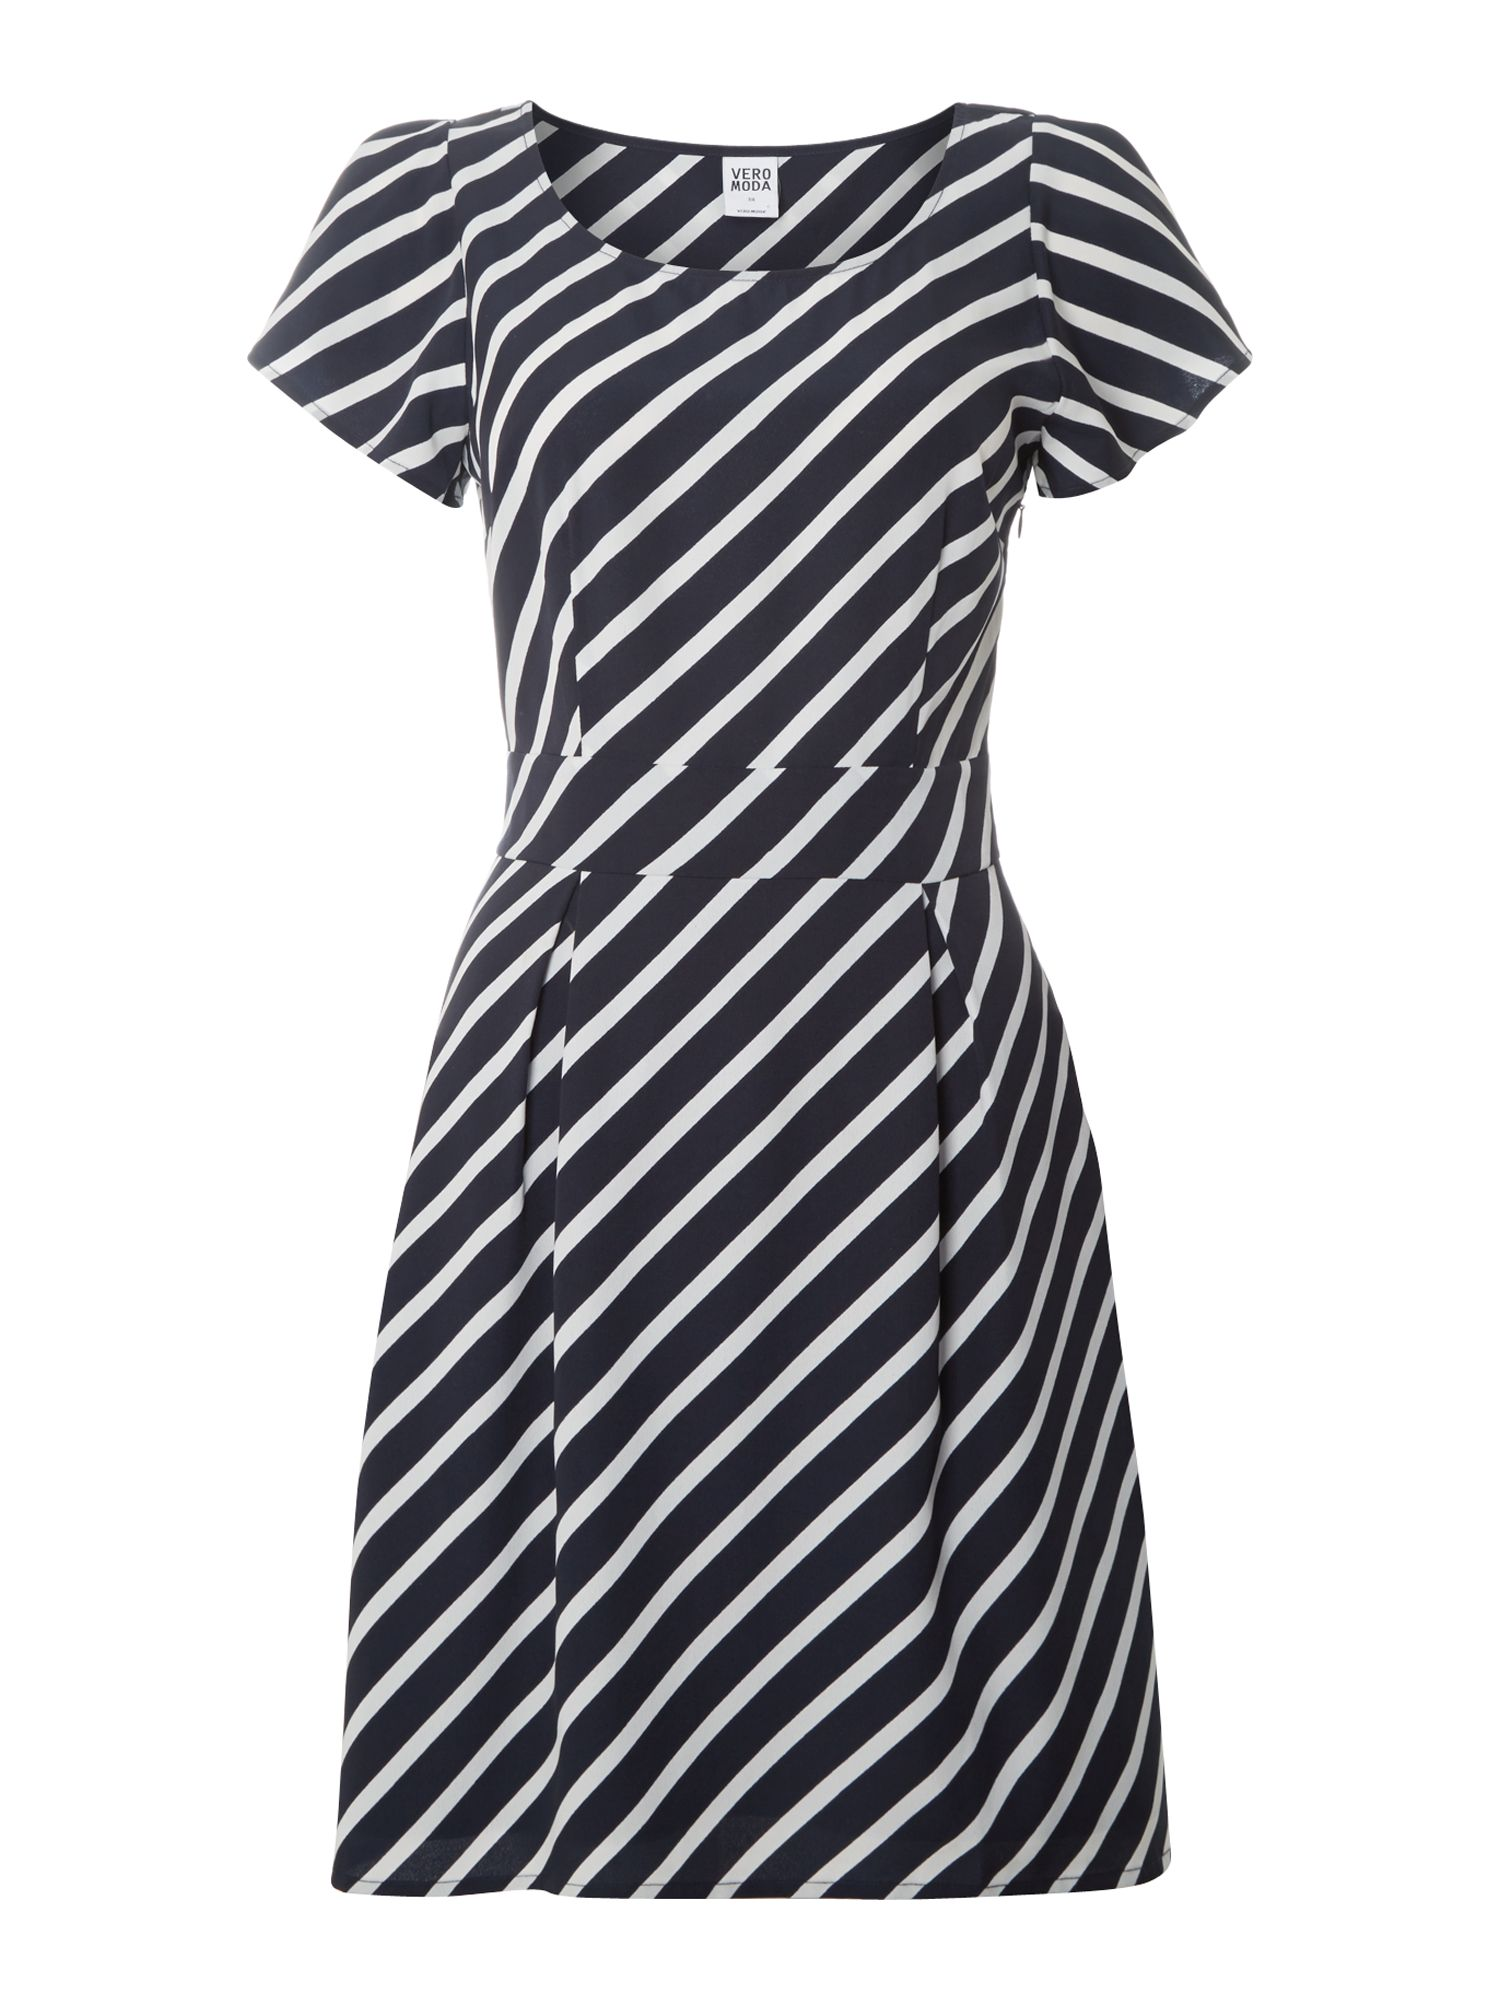 Cap sleeve striped dress